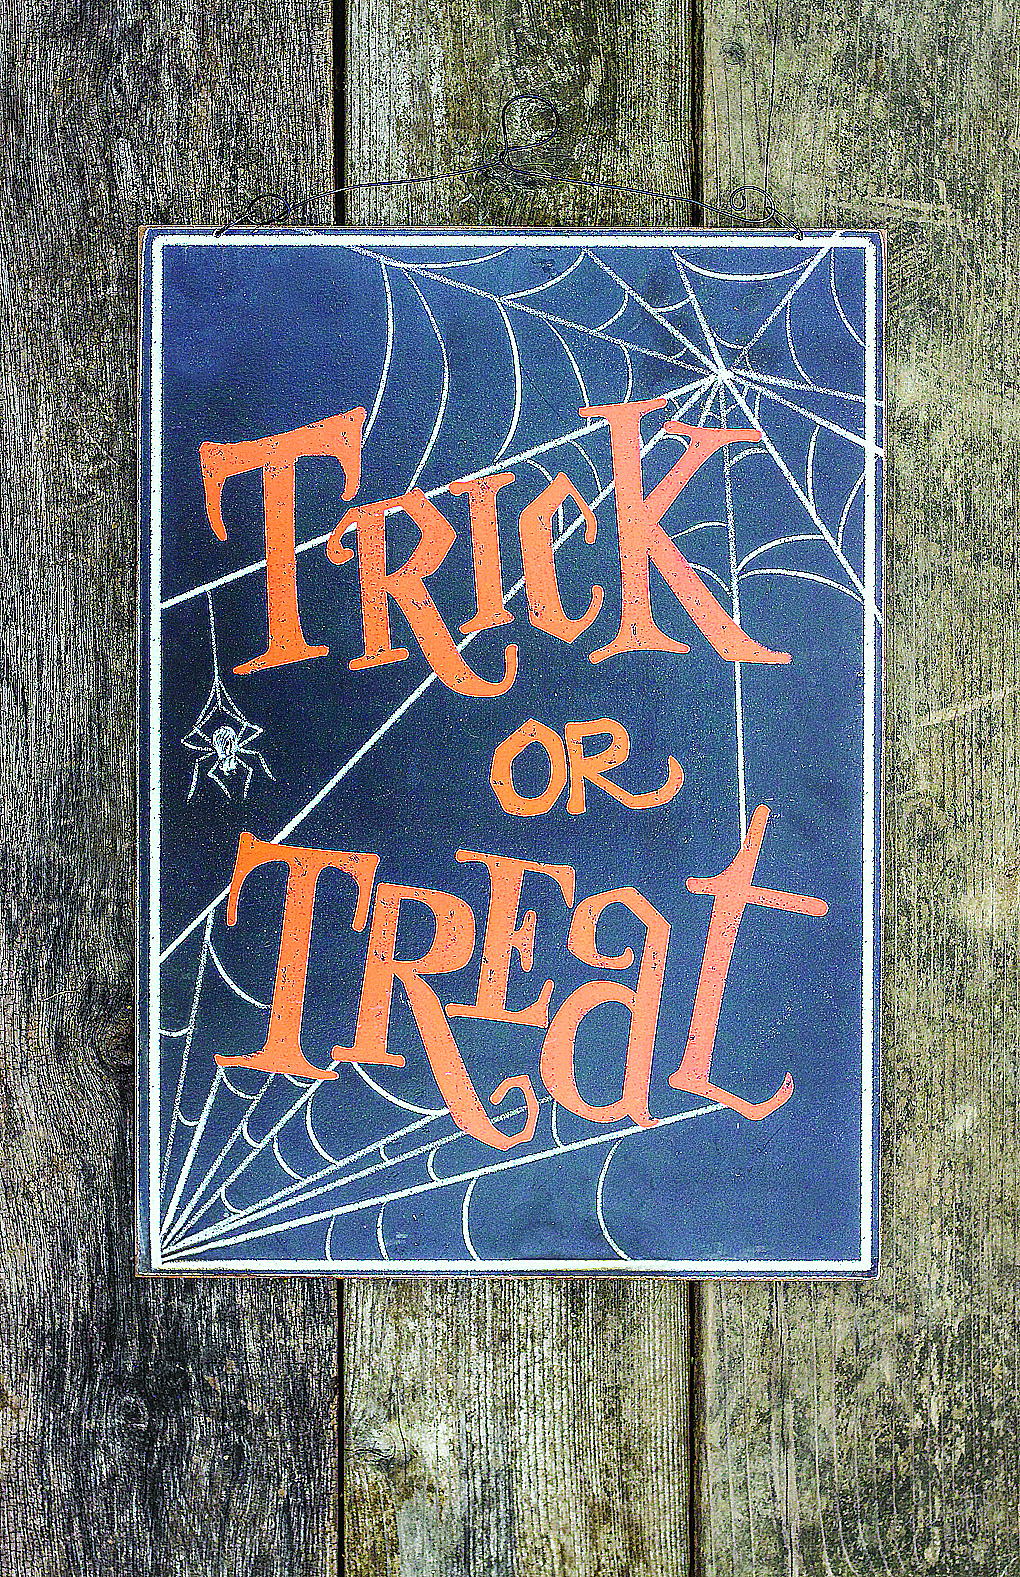 Safety, etiquette rules keep trick-or-treating fun ...